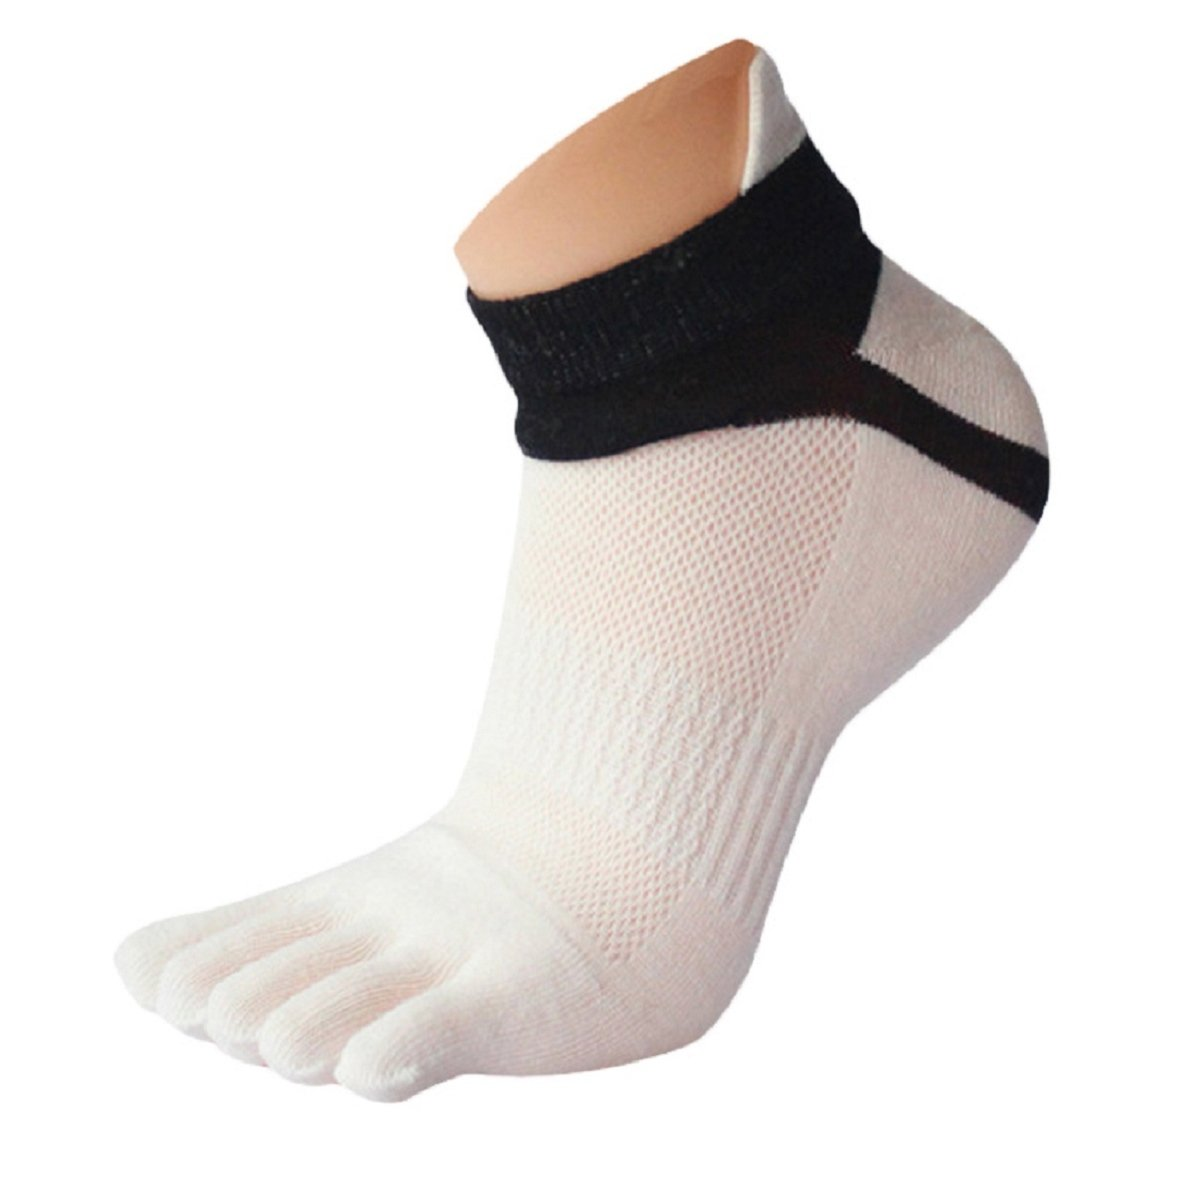 Amison 1 Pair Men Mesh Meias Sports Running Five Finger Toe Socks